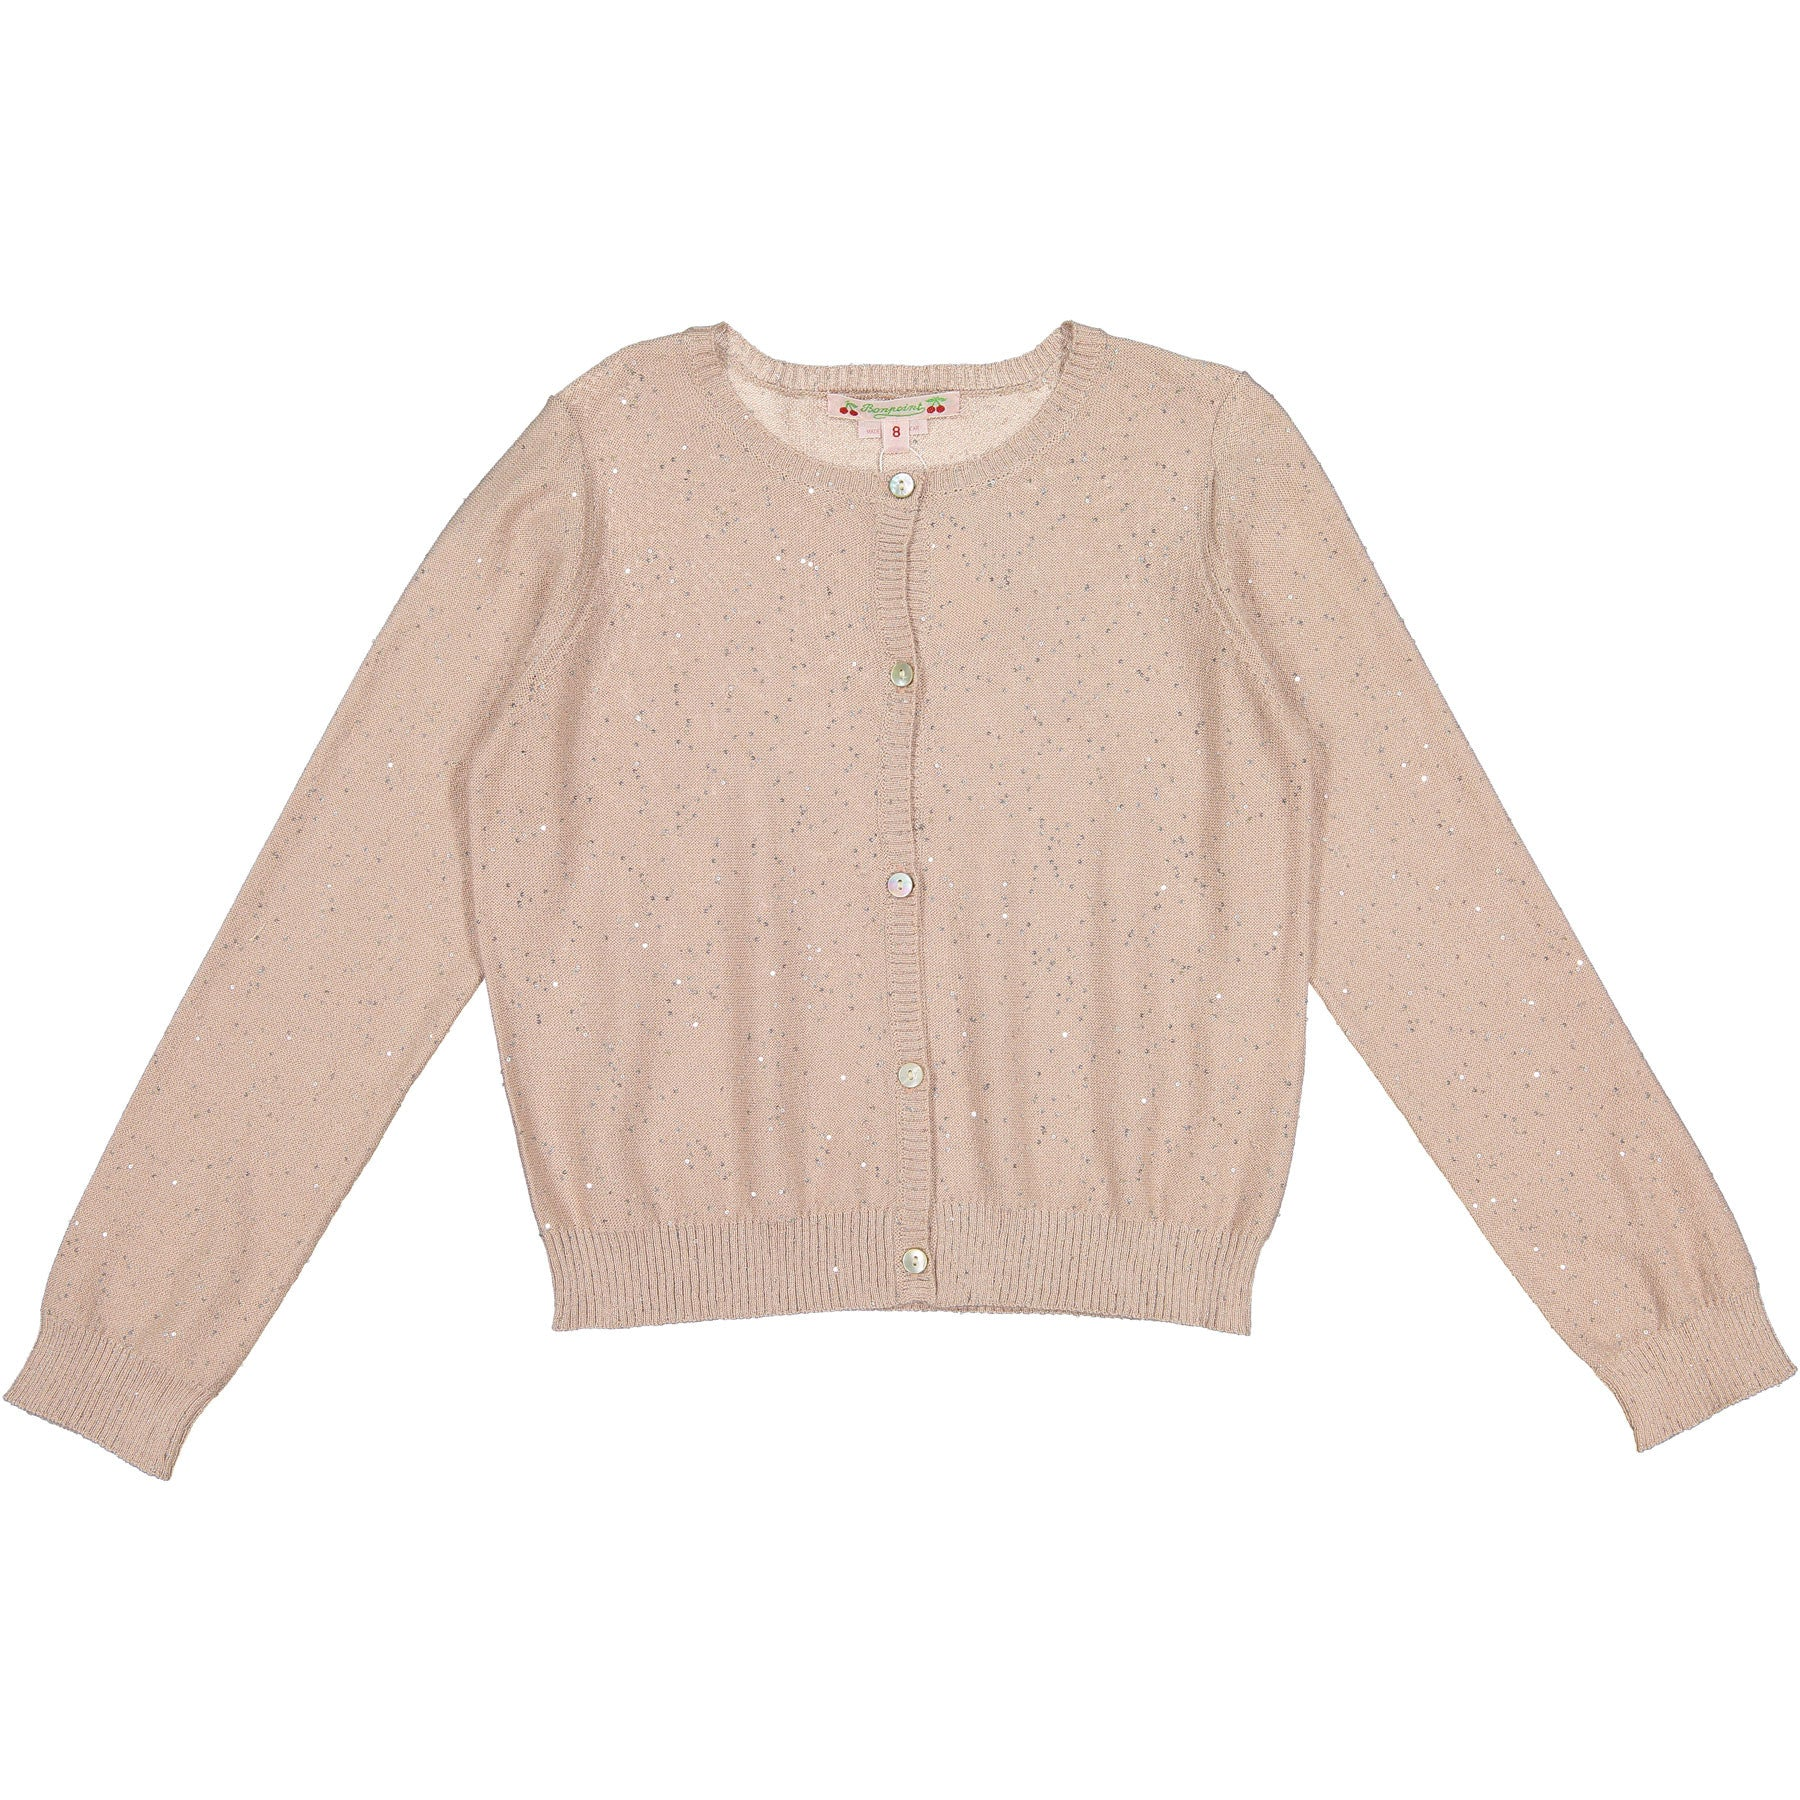 Bonpoint Rose Sparkle Cardigan - Ladida